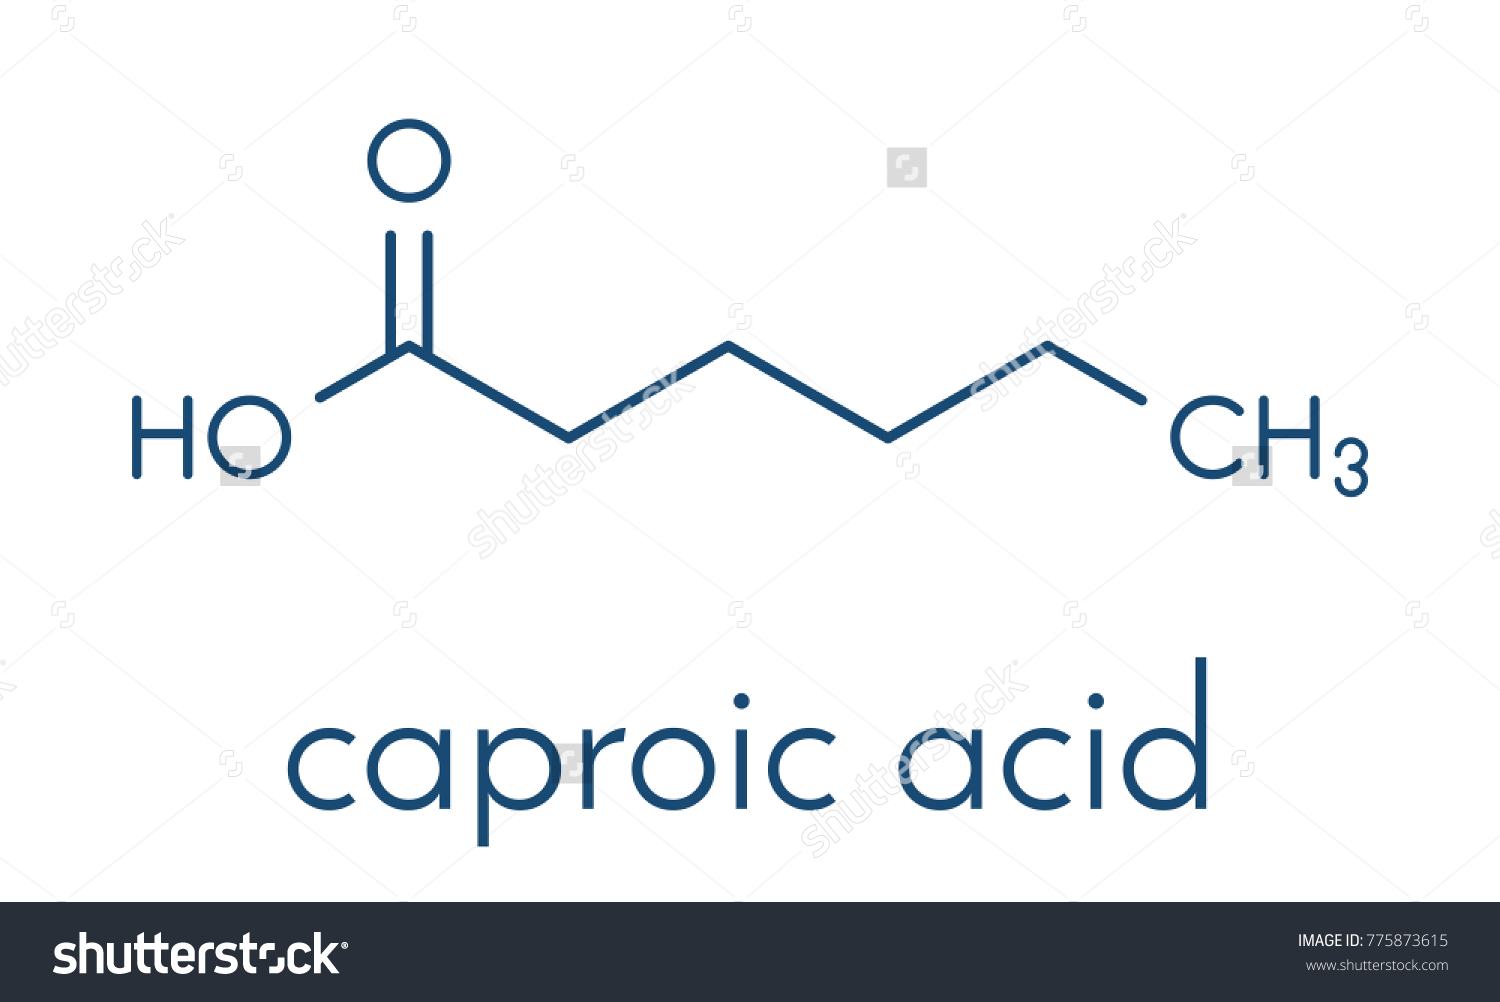 Caproic acid hexanoic acid fatty acid stock vector 775873615 caproic acid hexanoic acid fatty acid molecule salts and esters are called hexanoates pooptronica